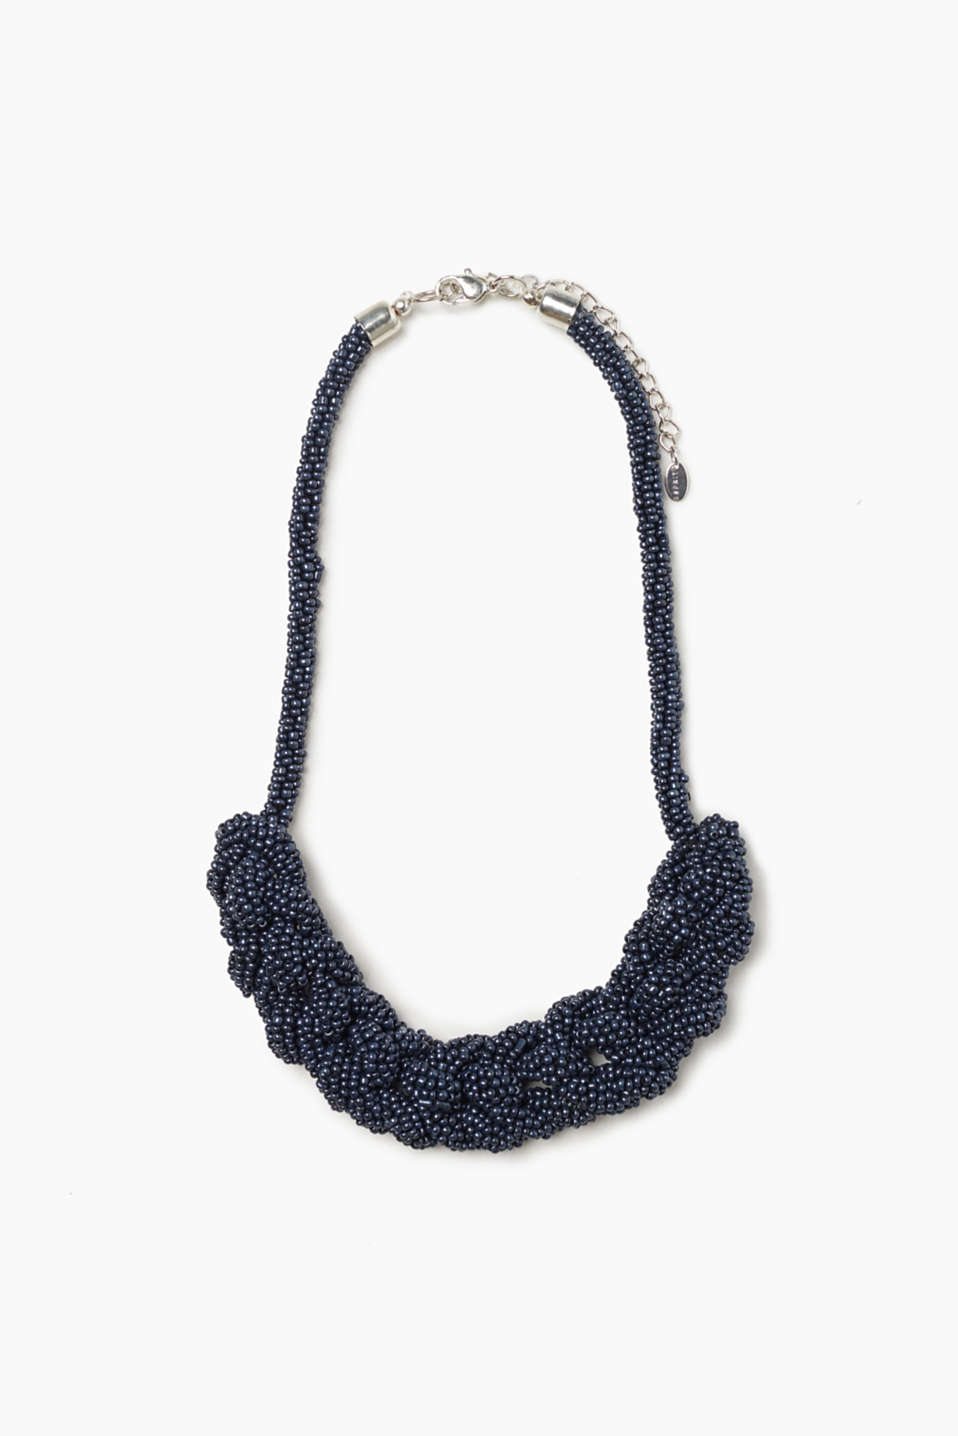 Esprit - Short necklace + glass beads in braid style